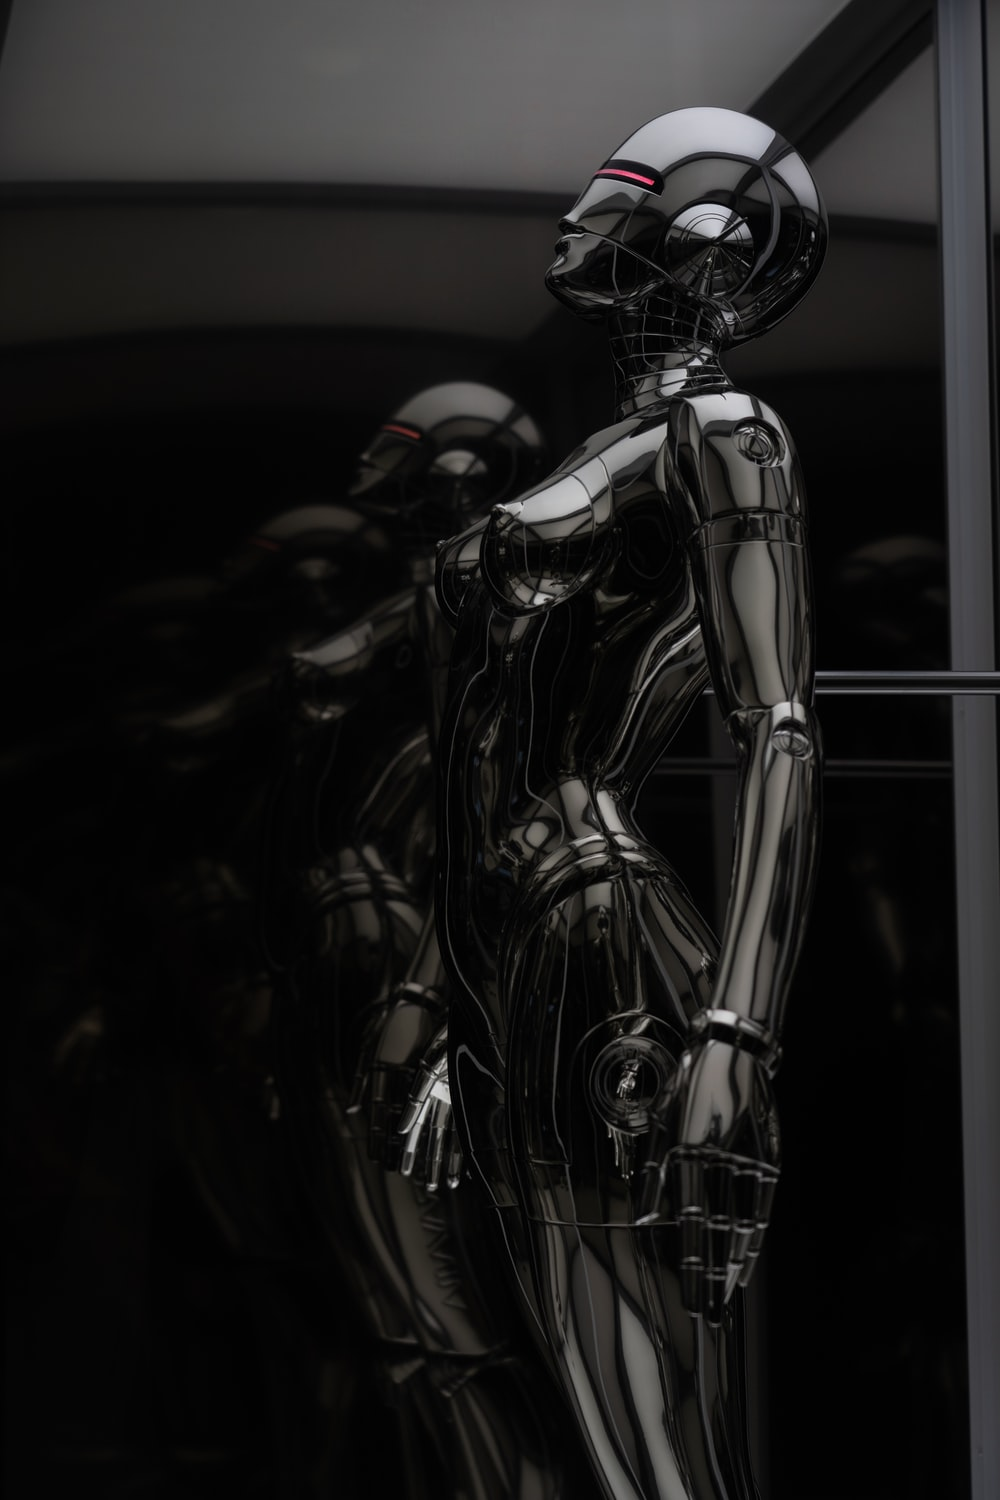 stainless steel robot toy in close up photography